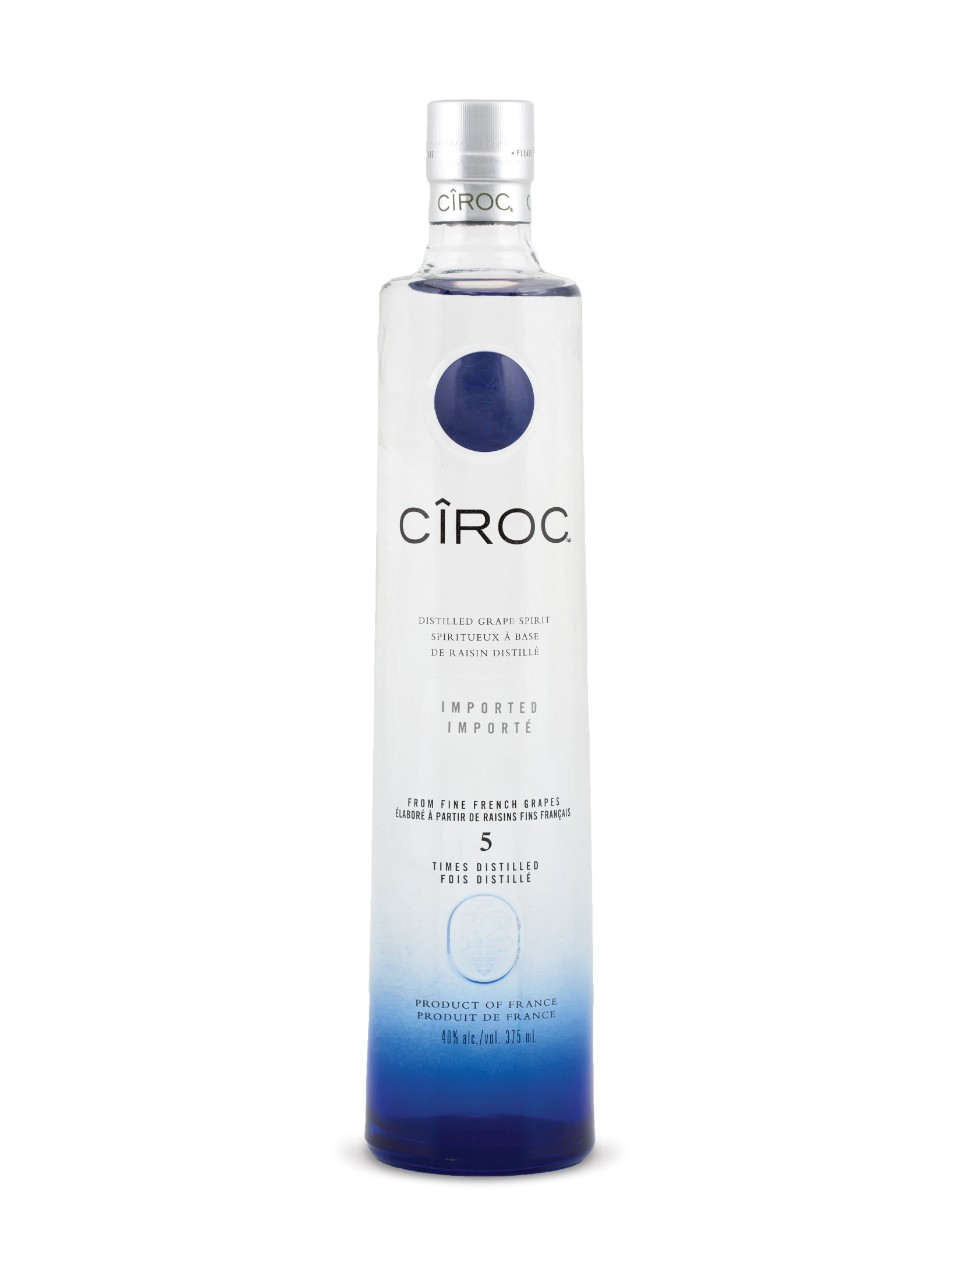 Ciroc from LCBO